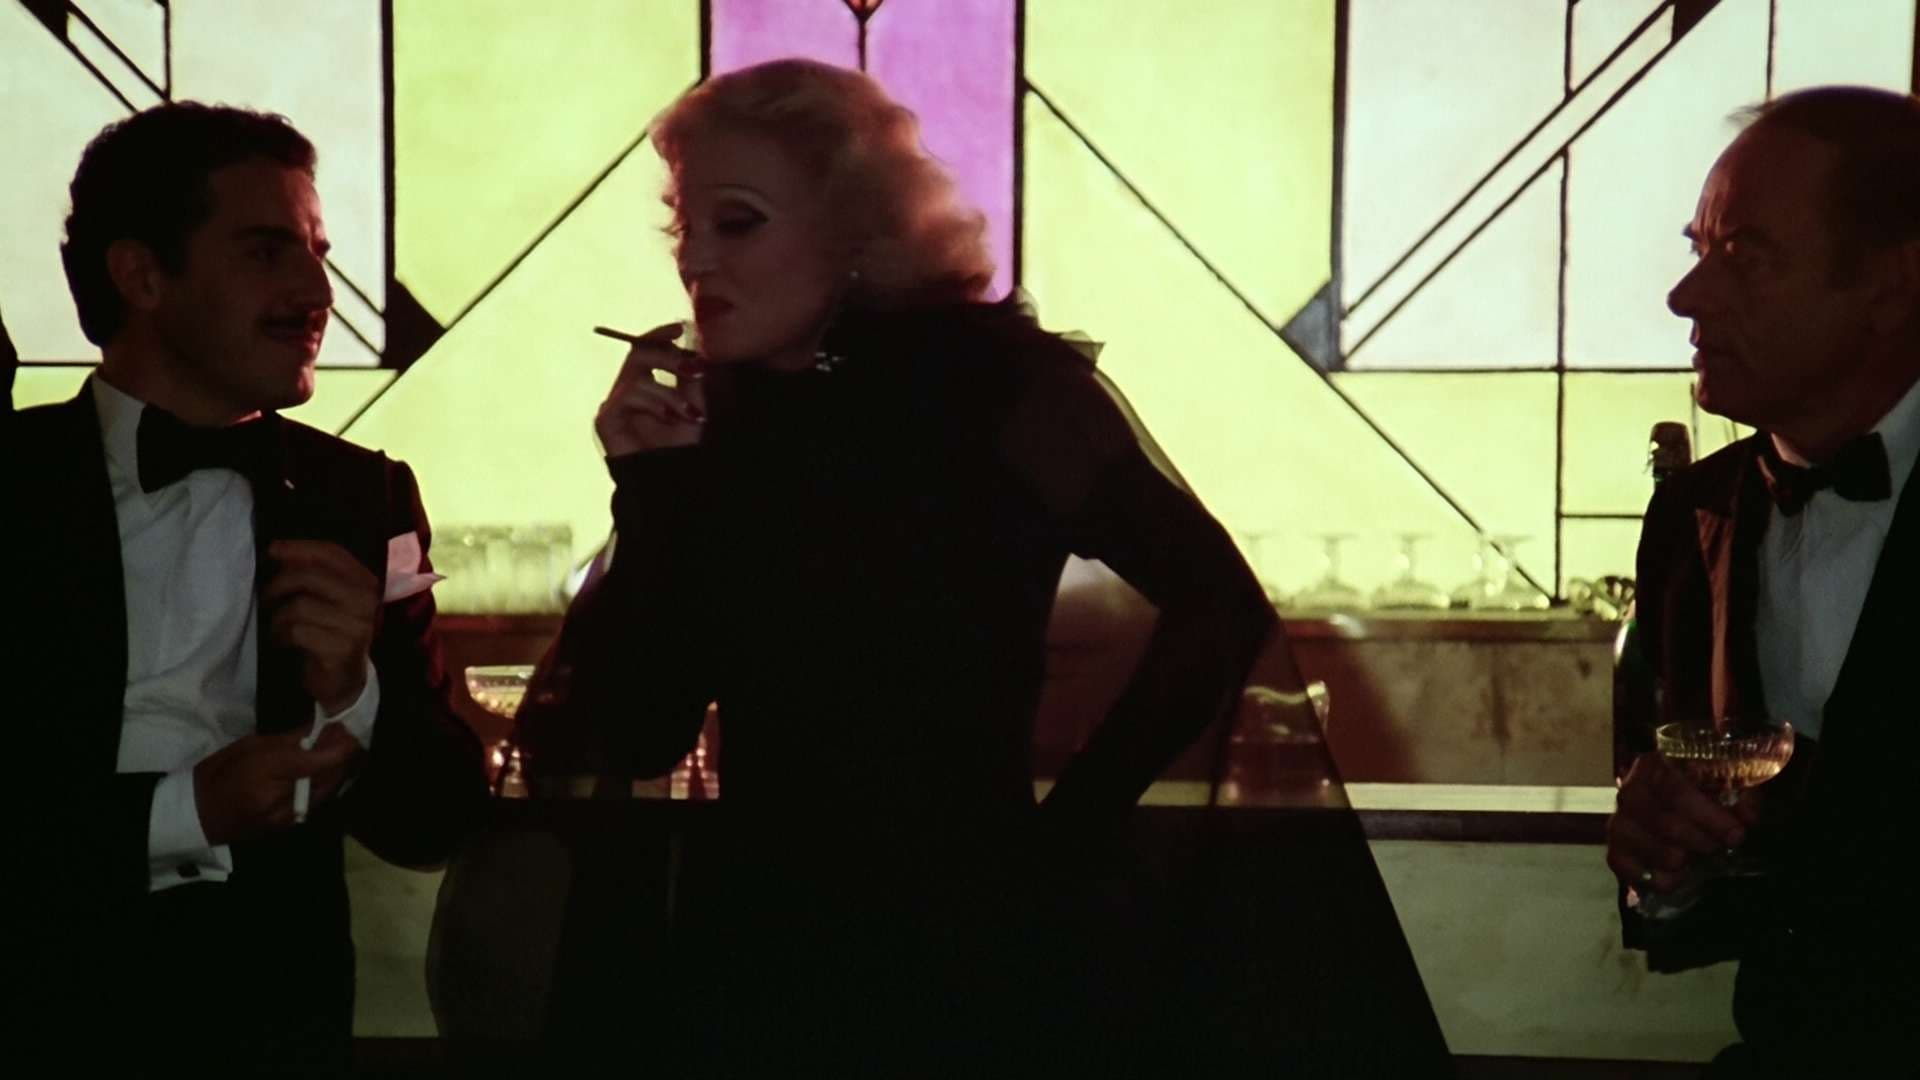 Salon Kitty Salon Kitty 1976 Movies Film Cine